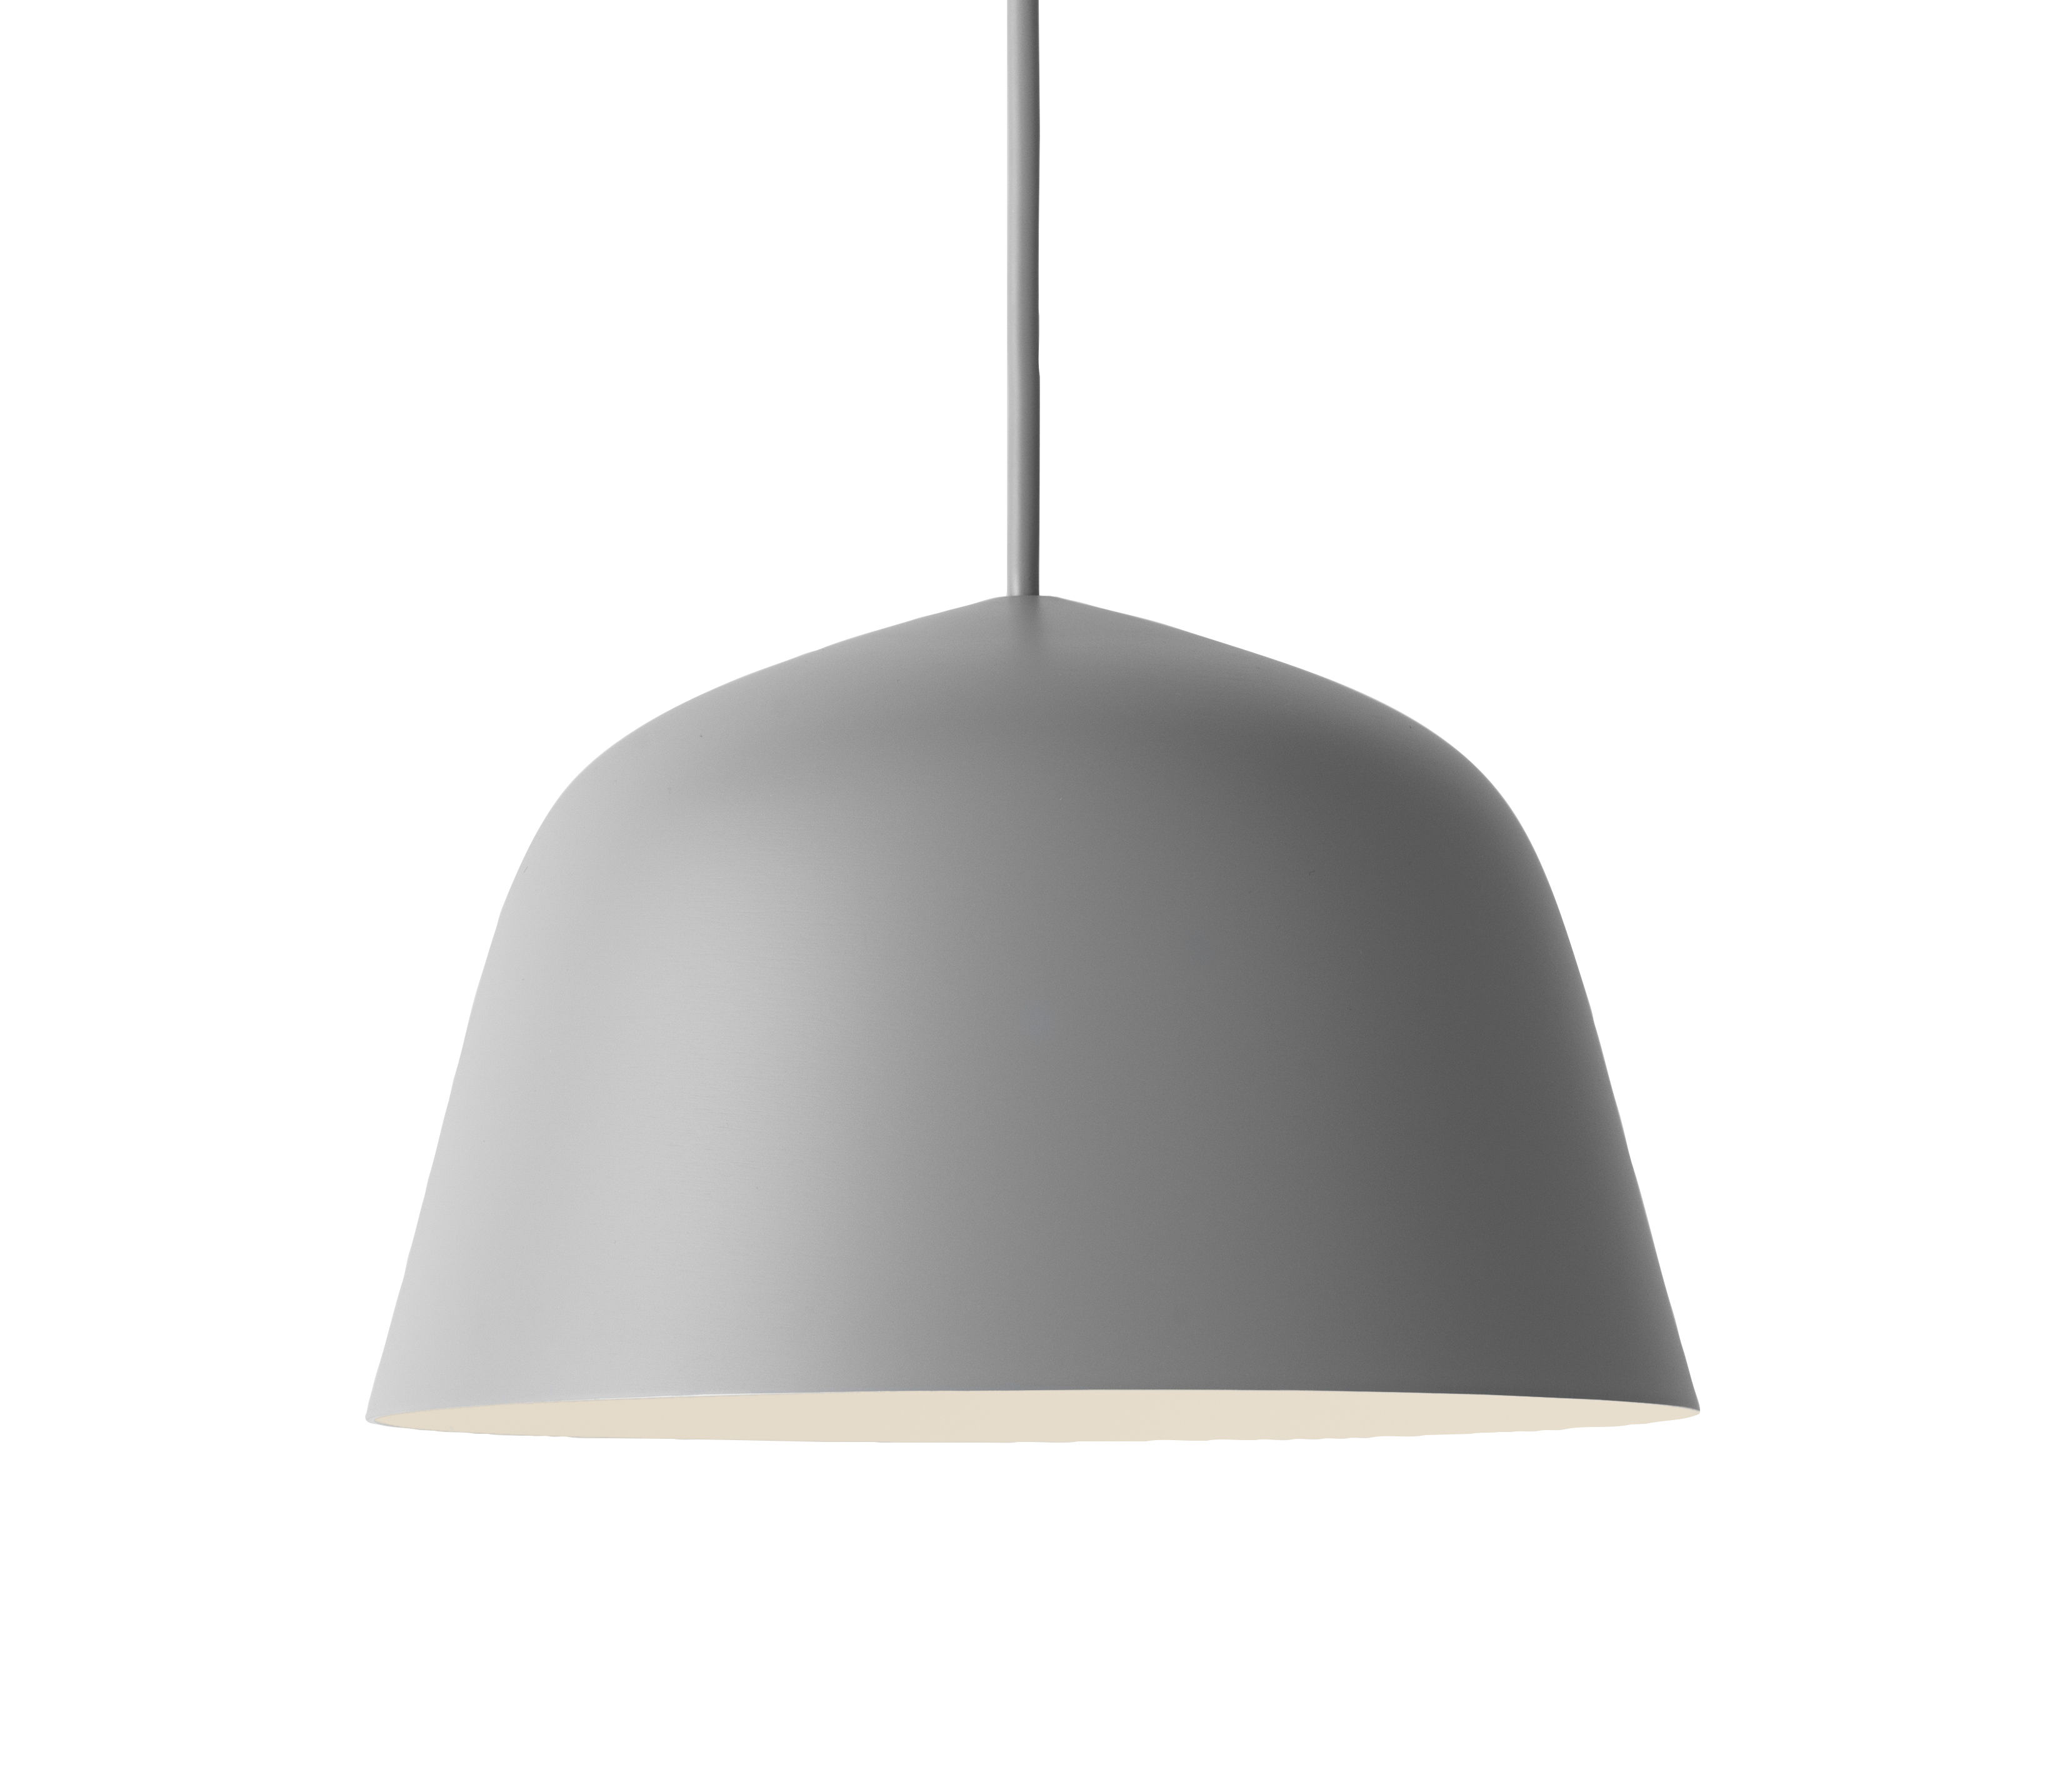 Luminaire - Suspensions - Suspension Ambit / Ø 25 cm - Métal - Muuto - Gris - Aluminium